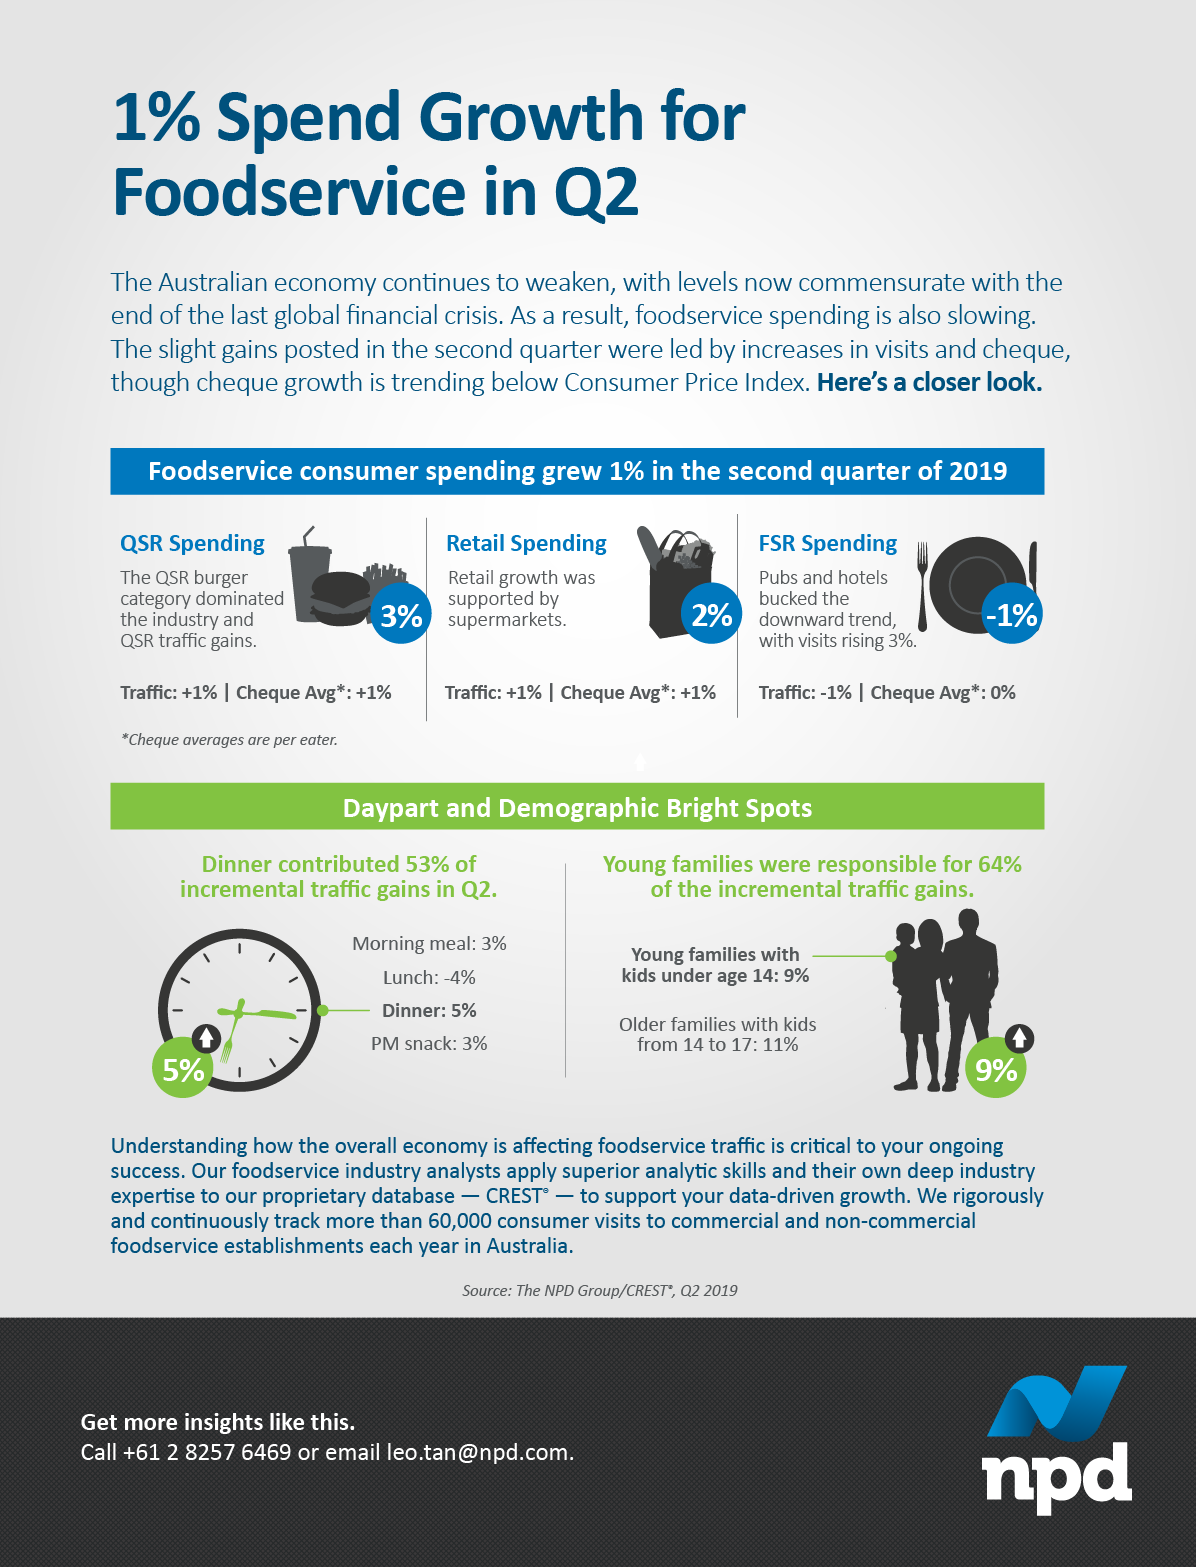 In Australia, Q2 foodservice consumer spending grew 1%. That was led by increased in visits and cheque, though cheque growth is trending below Consumer Price Index . Get the story.